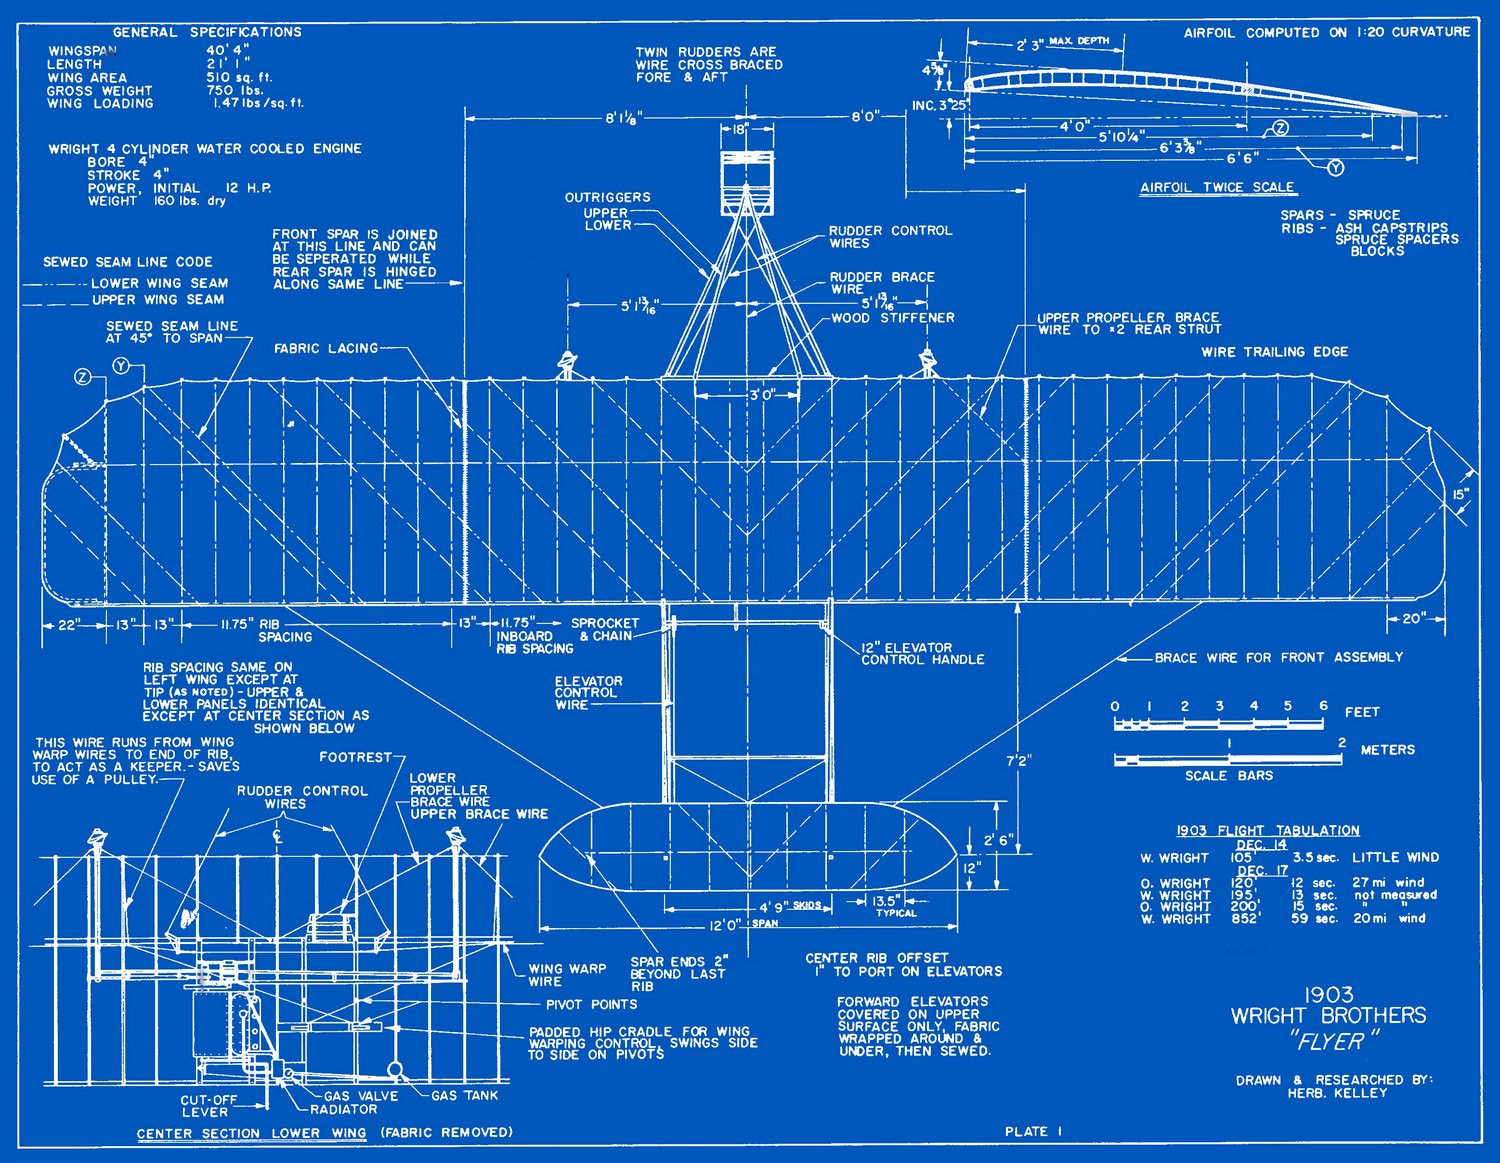 1903 wright flyer blueprints free download On create blueprints online